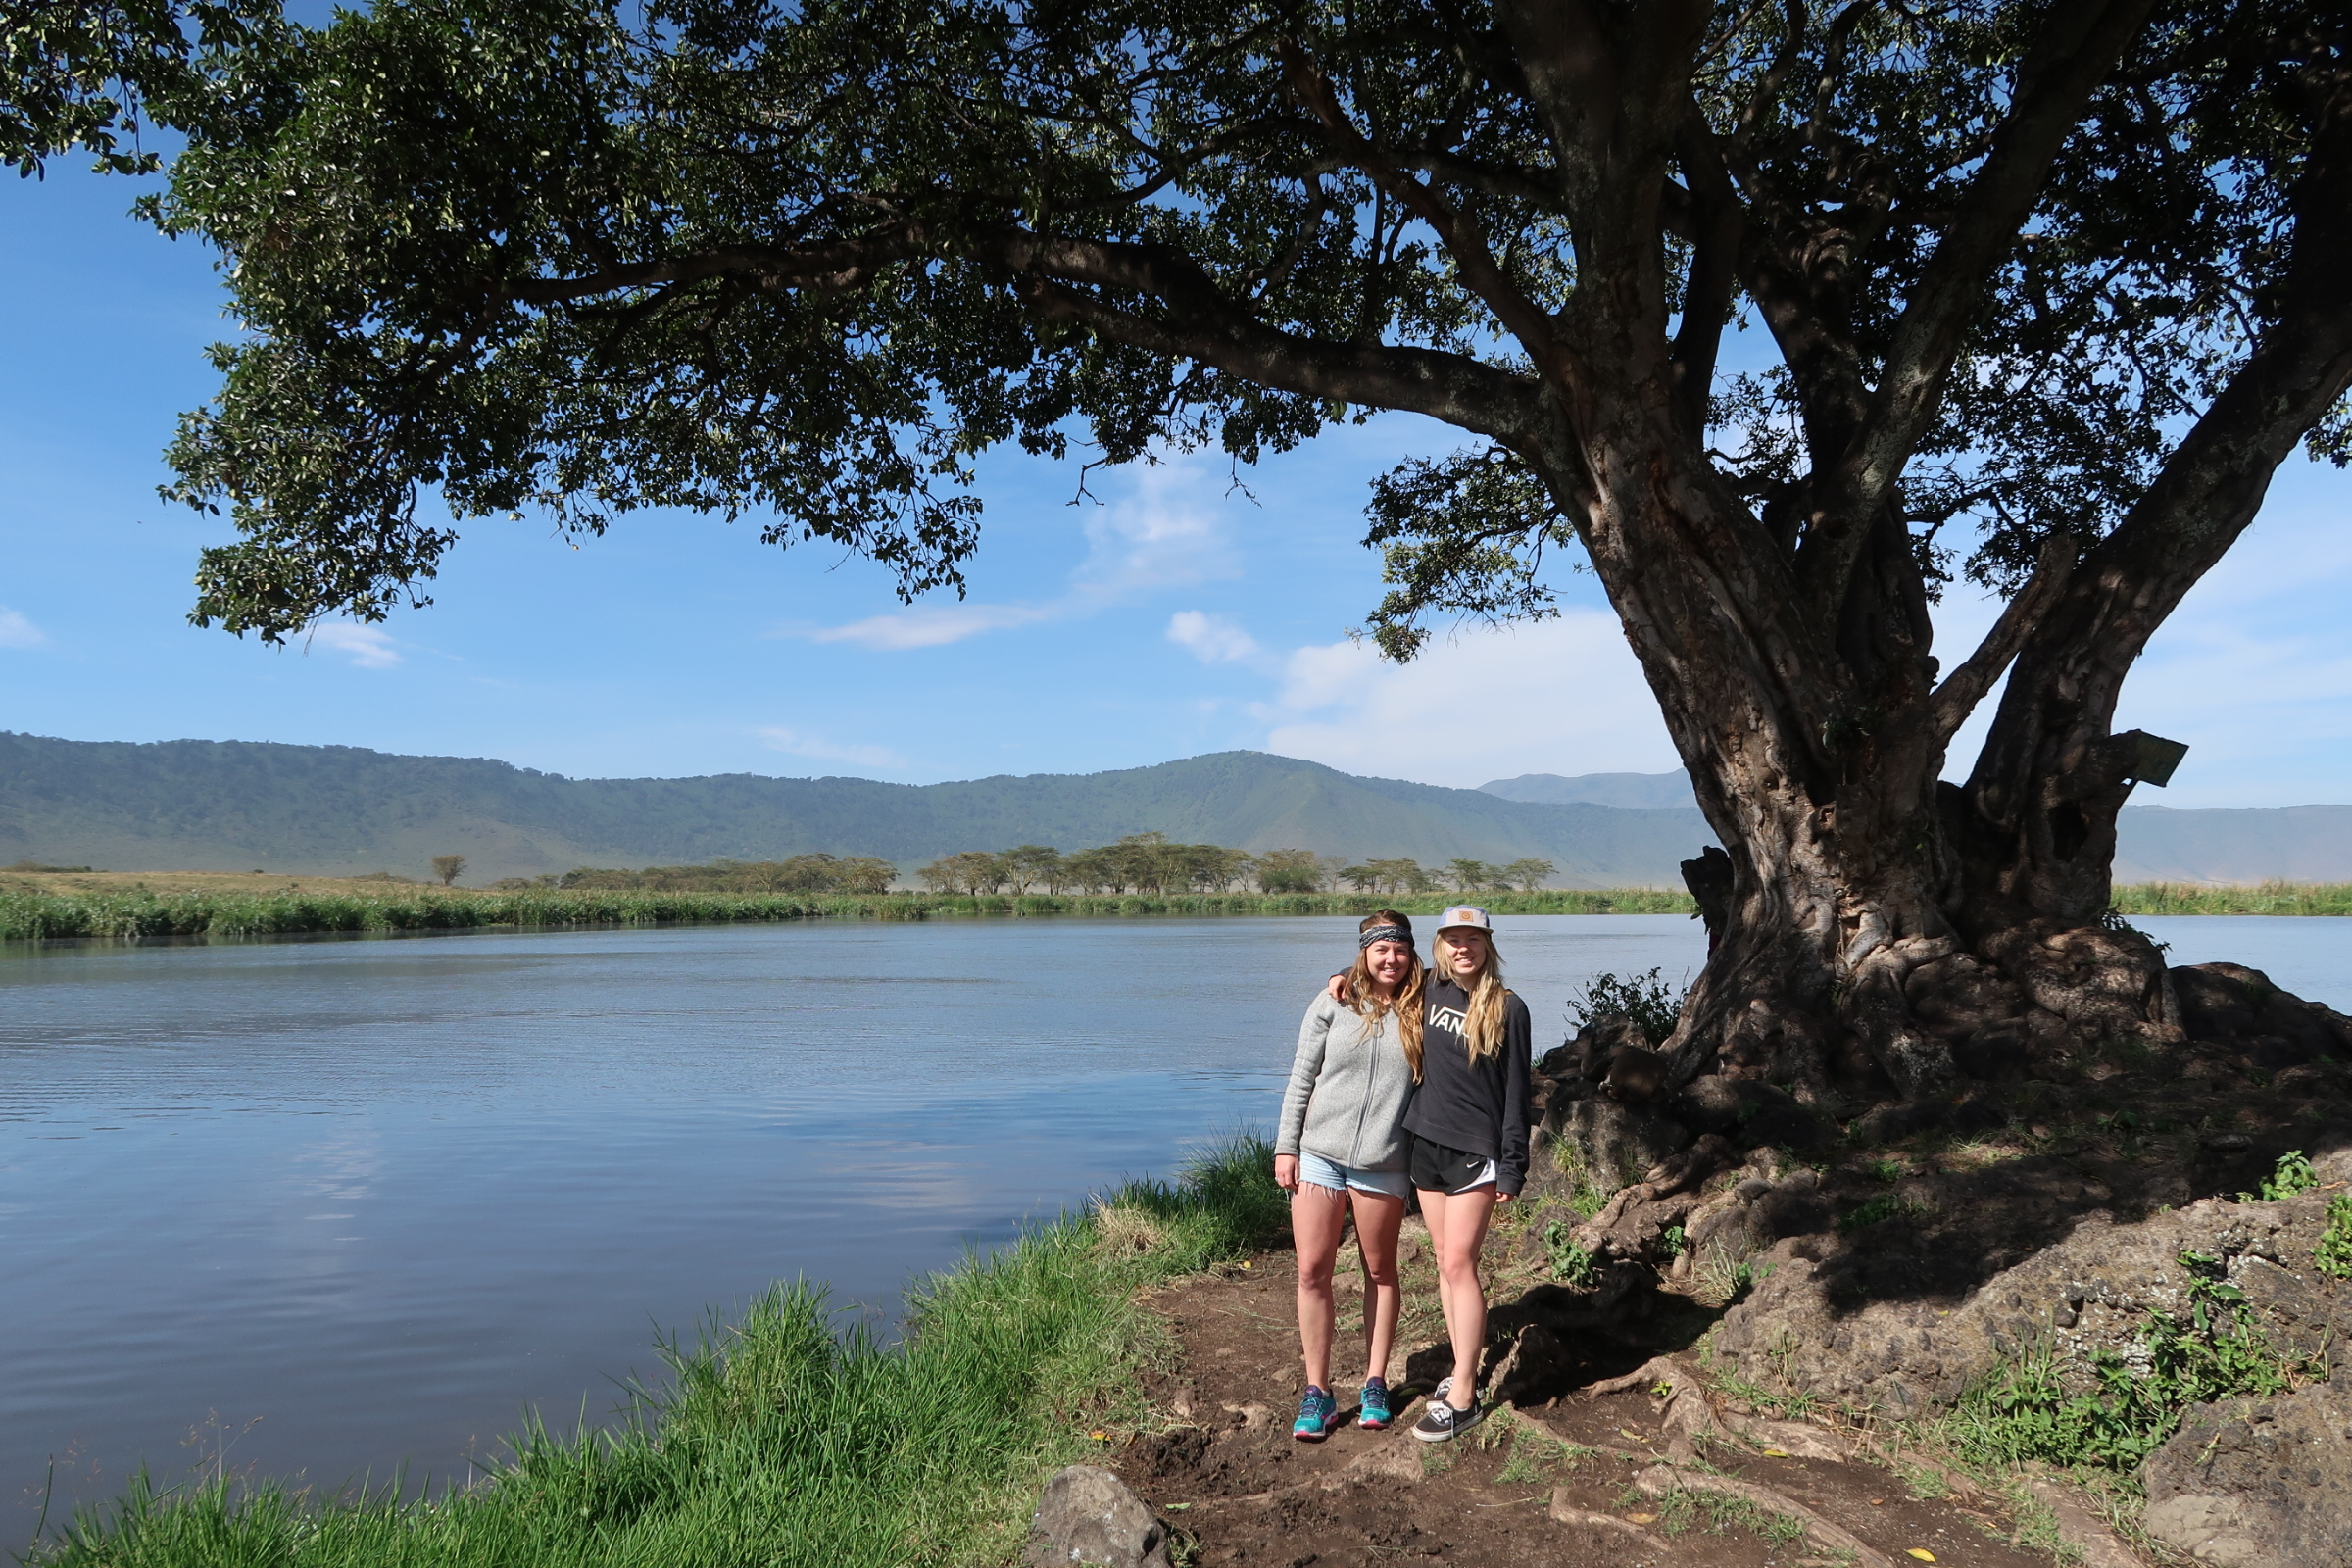 My sister, Molly and me at 'Hippo Lake' in Ngorogoro Crater. We drank coffee and ate breakfast while watching a dozen hippos, that seem to have disappeared for this photo, chill in the lake.